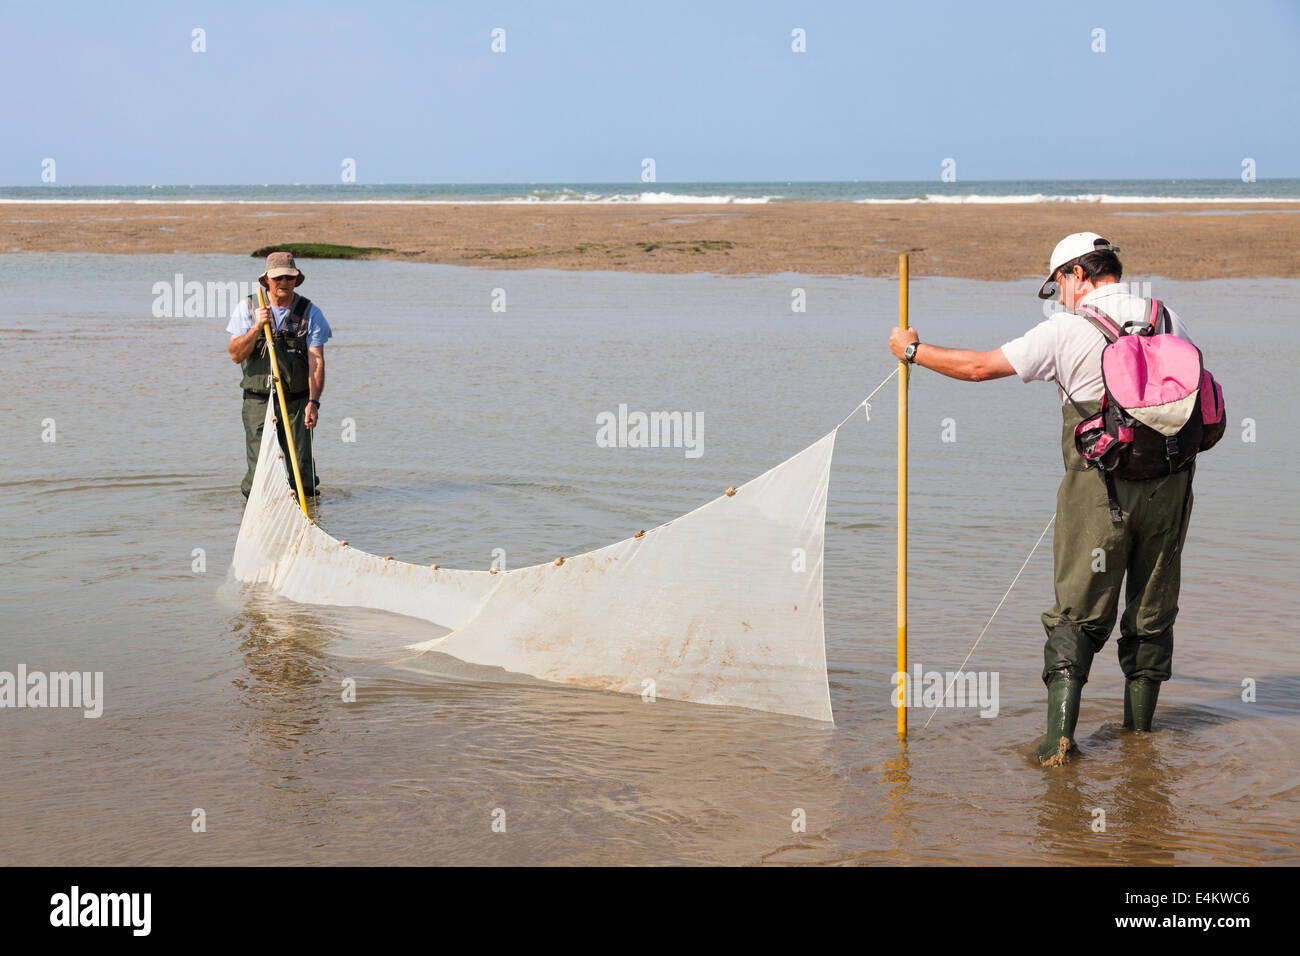 Two fishermen trawling for fish on the beach with a net in a in a pool left by the receding tide. - Stock Image